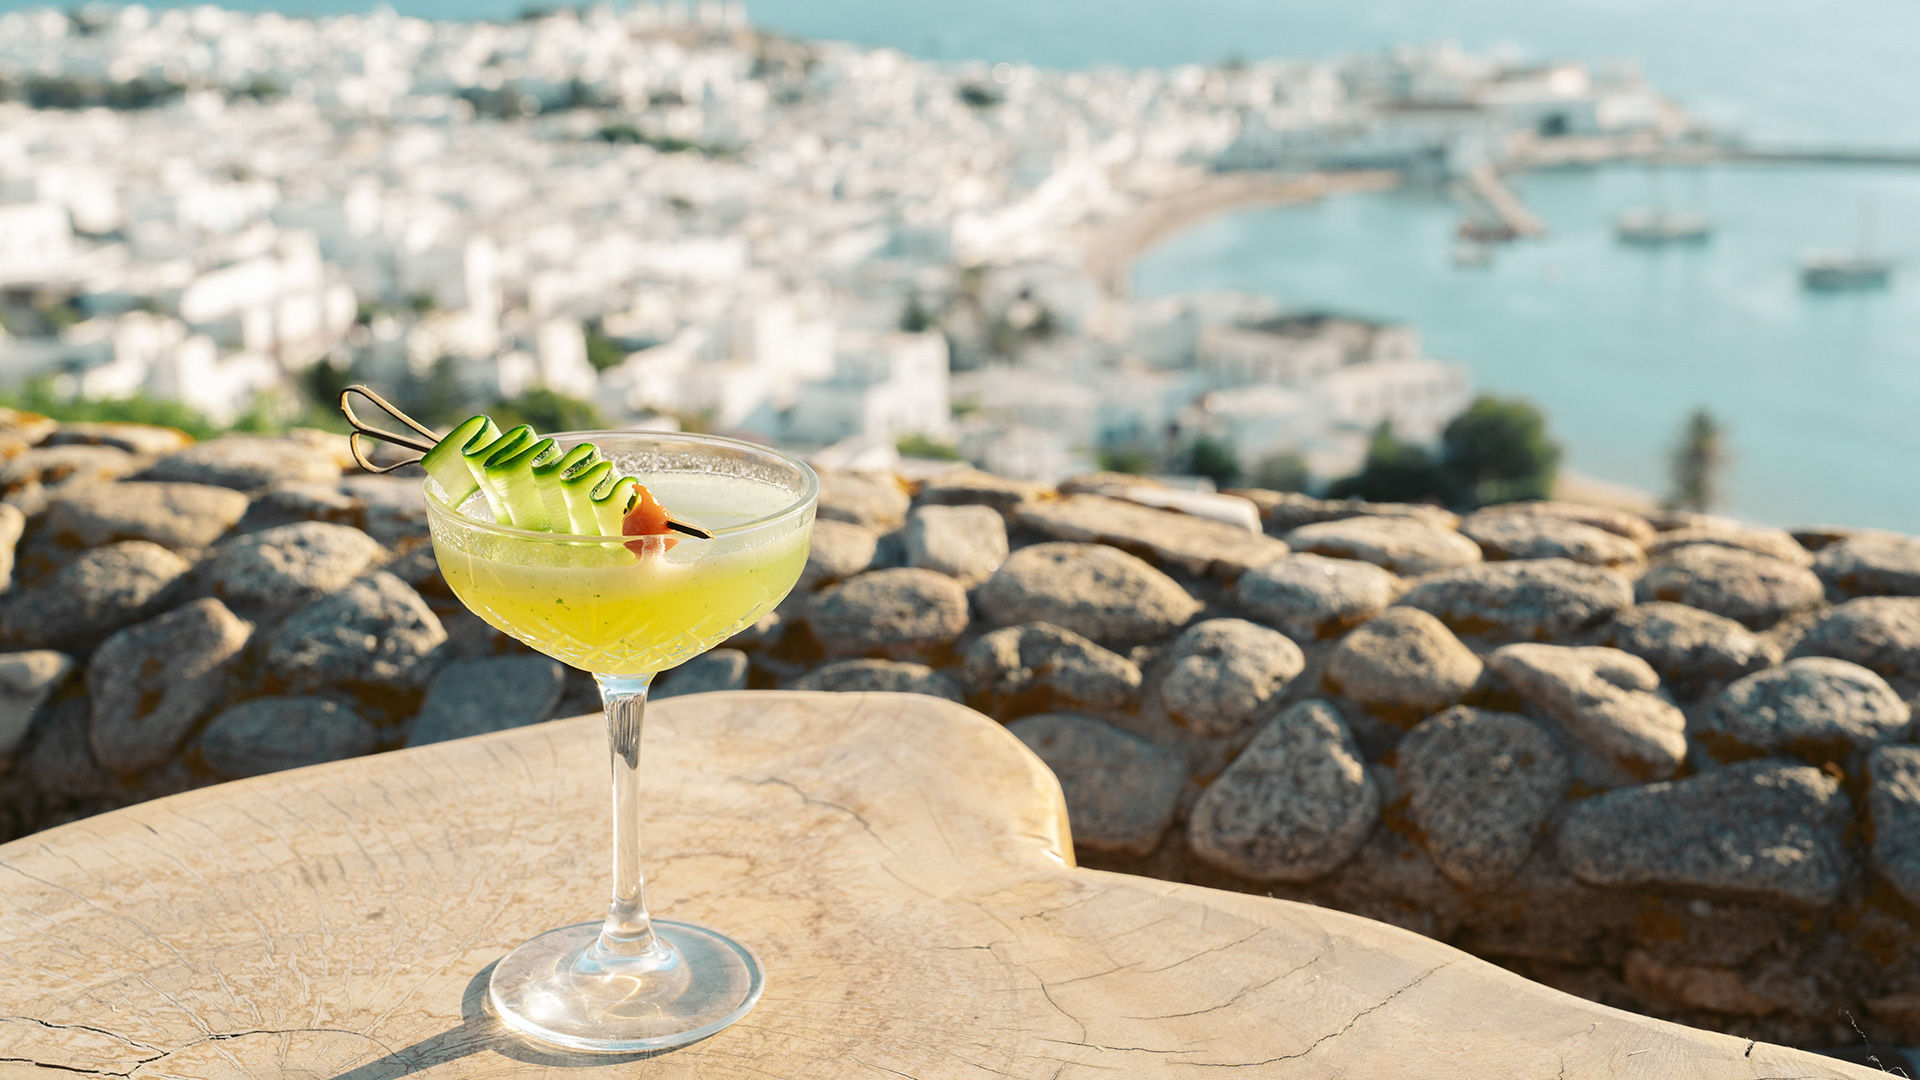 Nothing shouts style and sophistication quite like enjoying your drink in Mykonos.